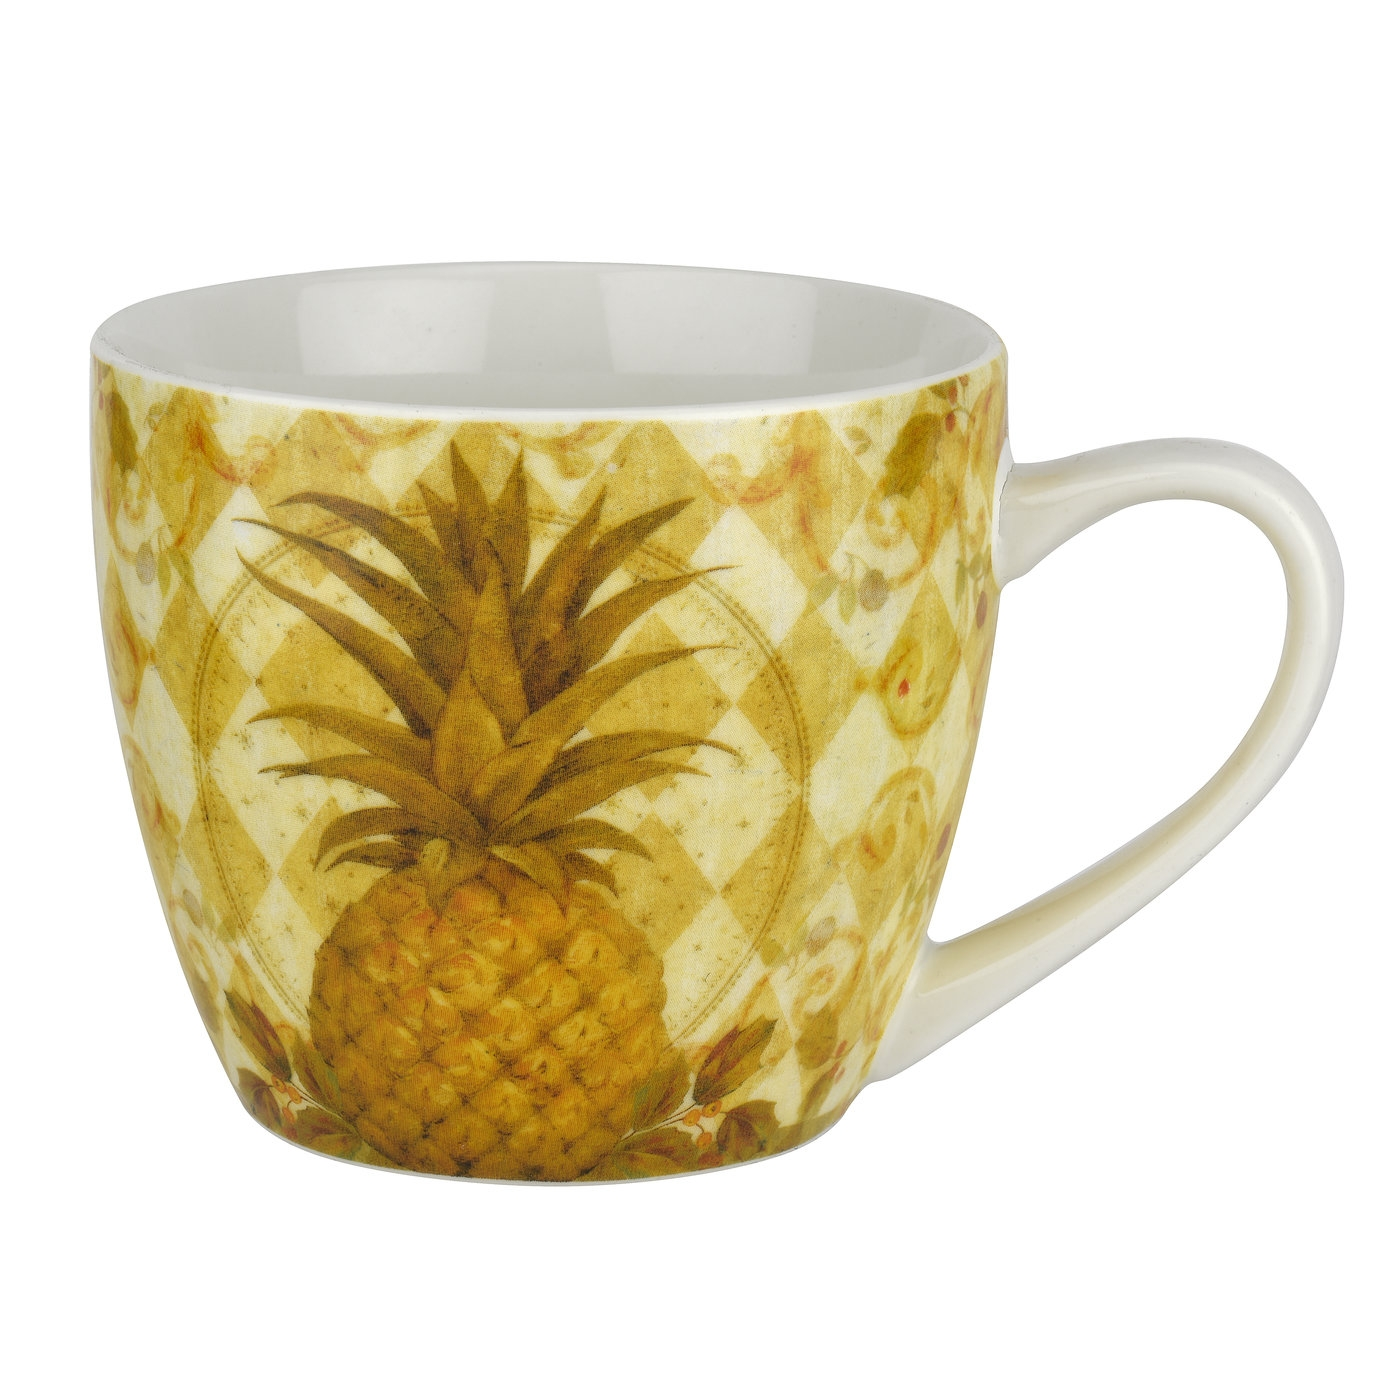 Pimpernel Golden Pineapple 16 oz Mug image number 0